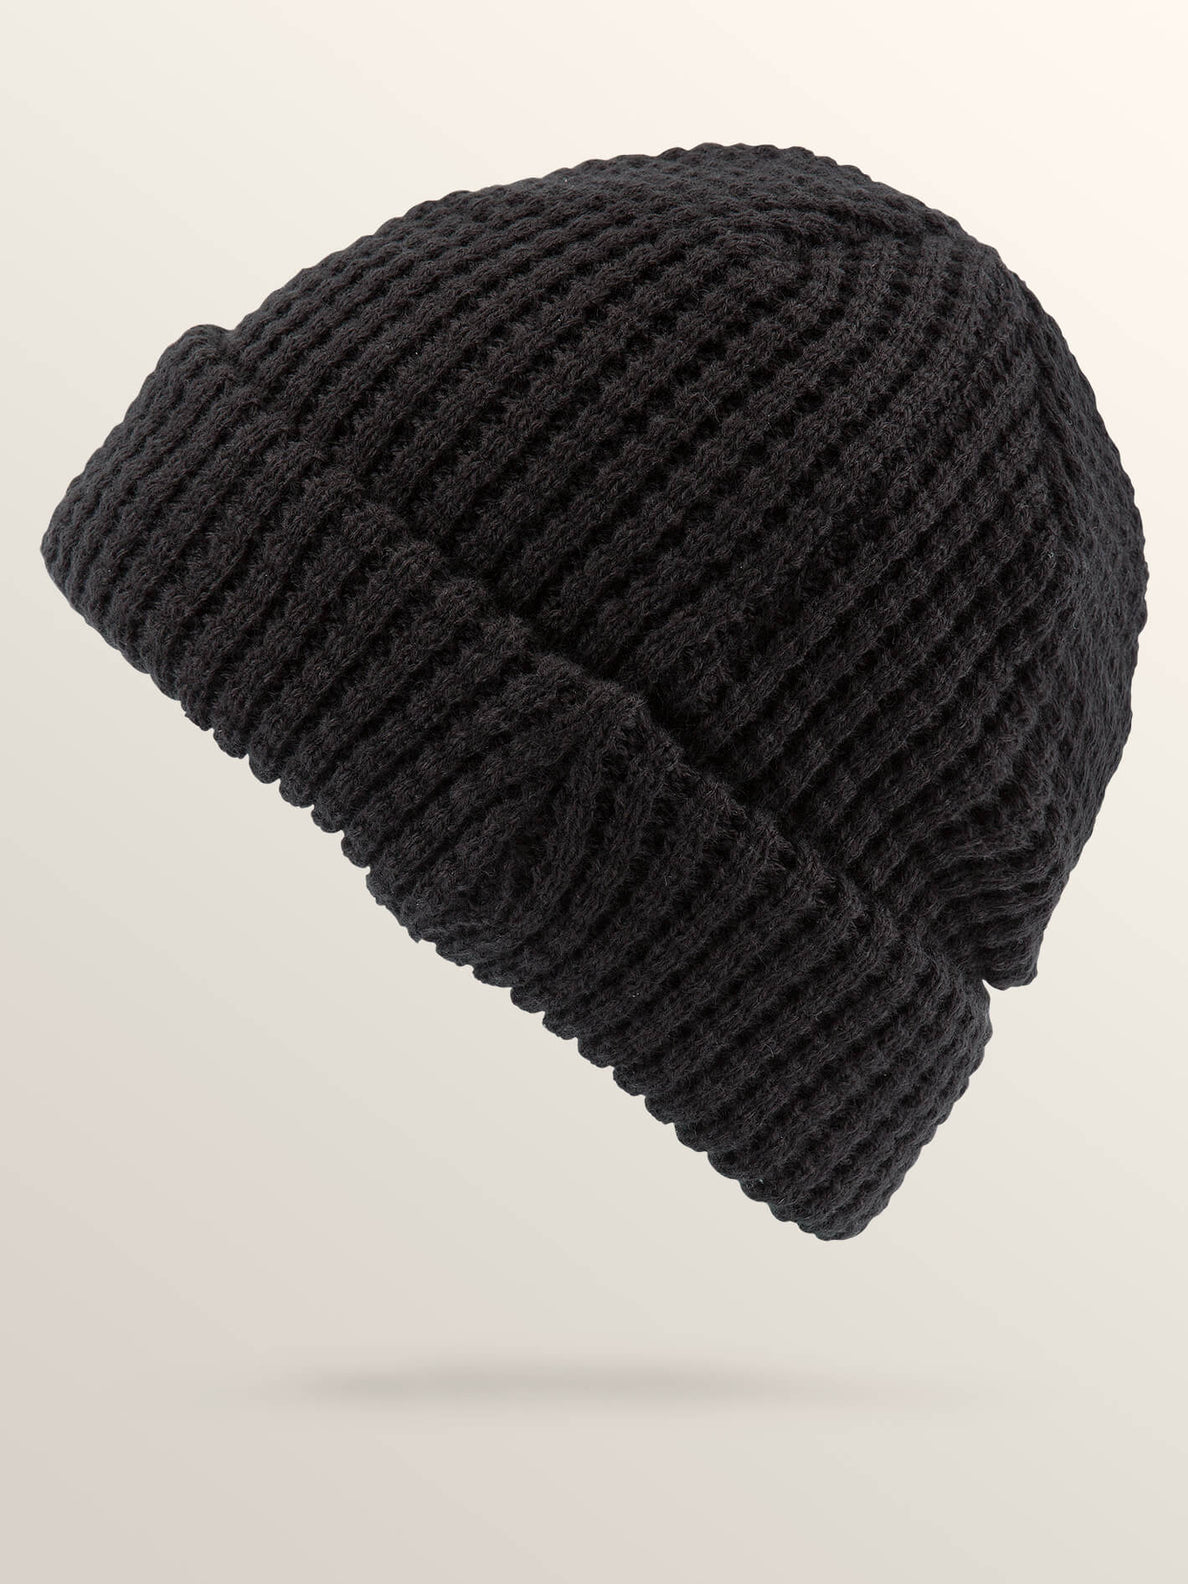 Hard Core In 94 Beanie In Asphalt Black, Back View